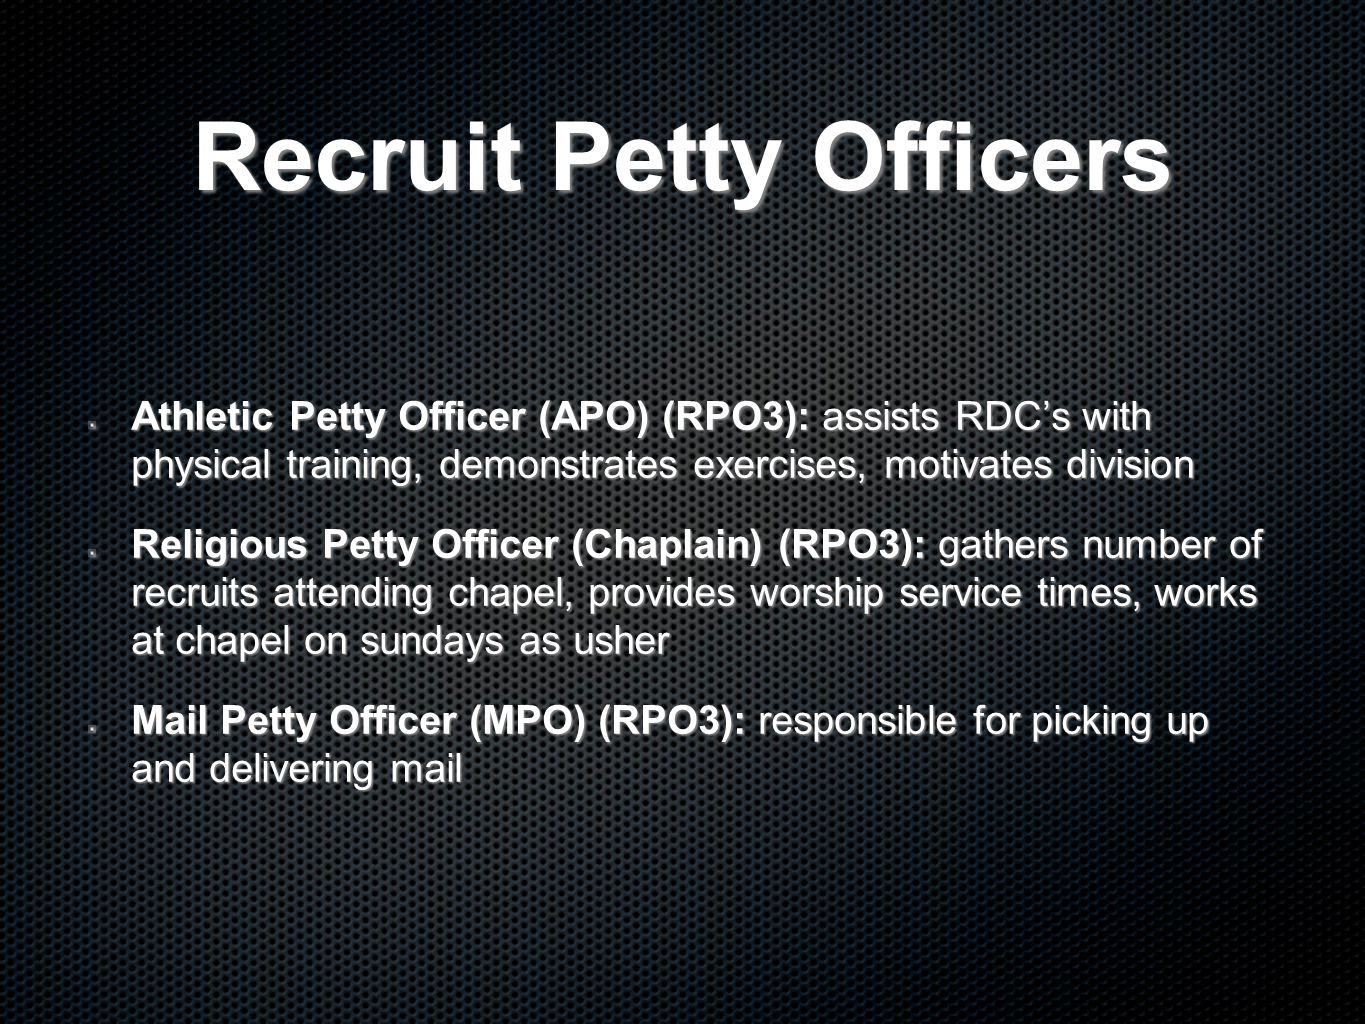 Recruit Petty Officers Athletic Petty Officer (APO) (RPO3): assists RDC's with physical training, demonstrates exercises, motivates division Religious Petty Officer (Chaplain) (RPO3): gathers number of recruits attending chapel, provides worship service times, works at chapel on sundays as usher Mail Petty Officer (MPO) (RPO3): responsible for picking up and delivering mail